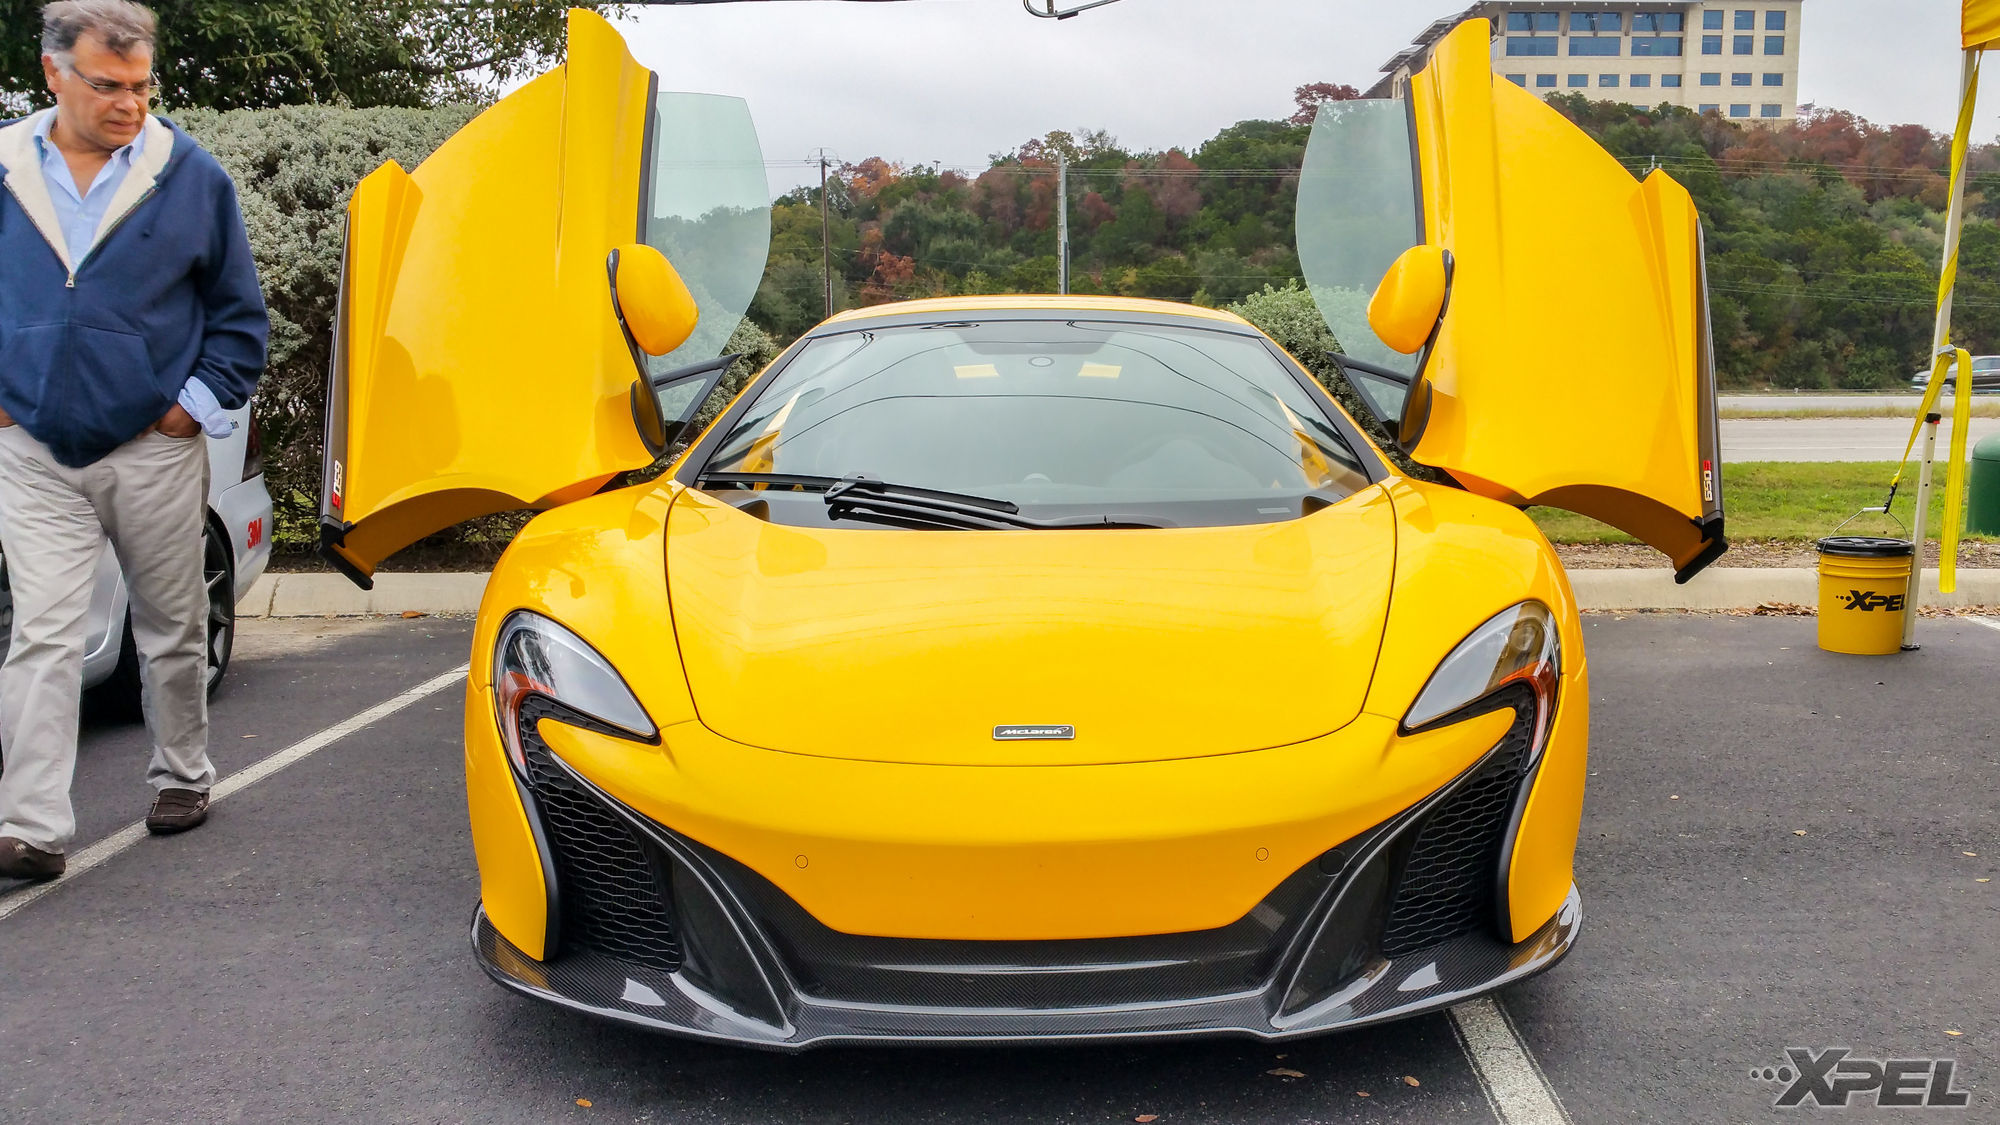 McLaren 650S | Protected with XPEL ULTIMATE self-healing clear bra